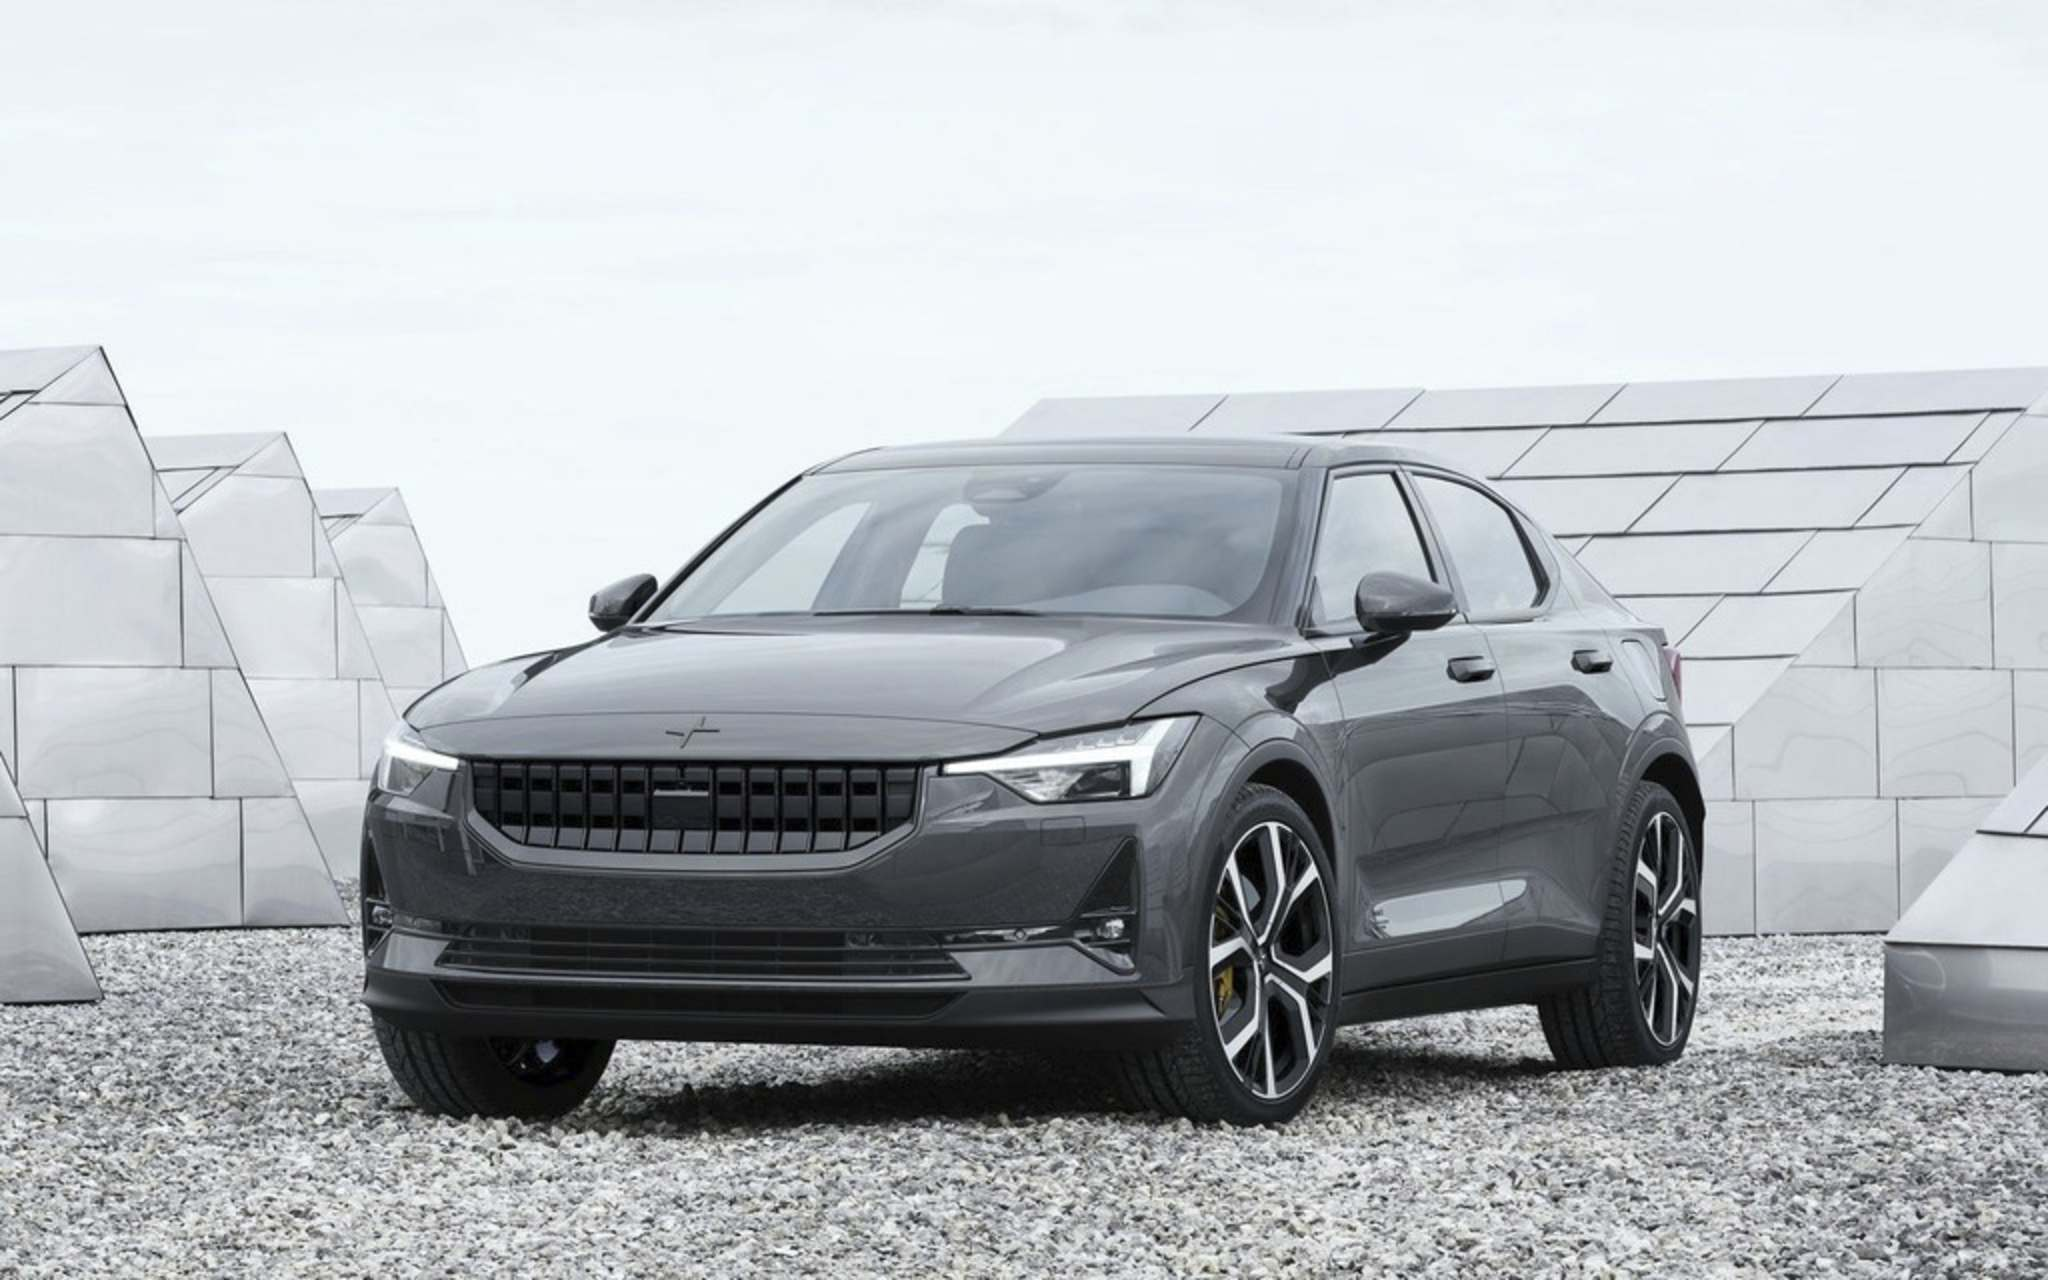 SuppliedThe Volvo Polestar 2 all-electric automobile is targeting established EV performance vehicles like Tesla's Model 3 and Jaguar's I-PACE.